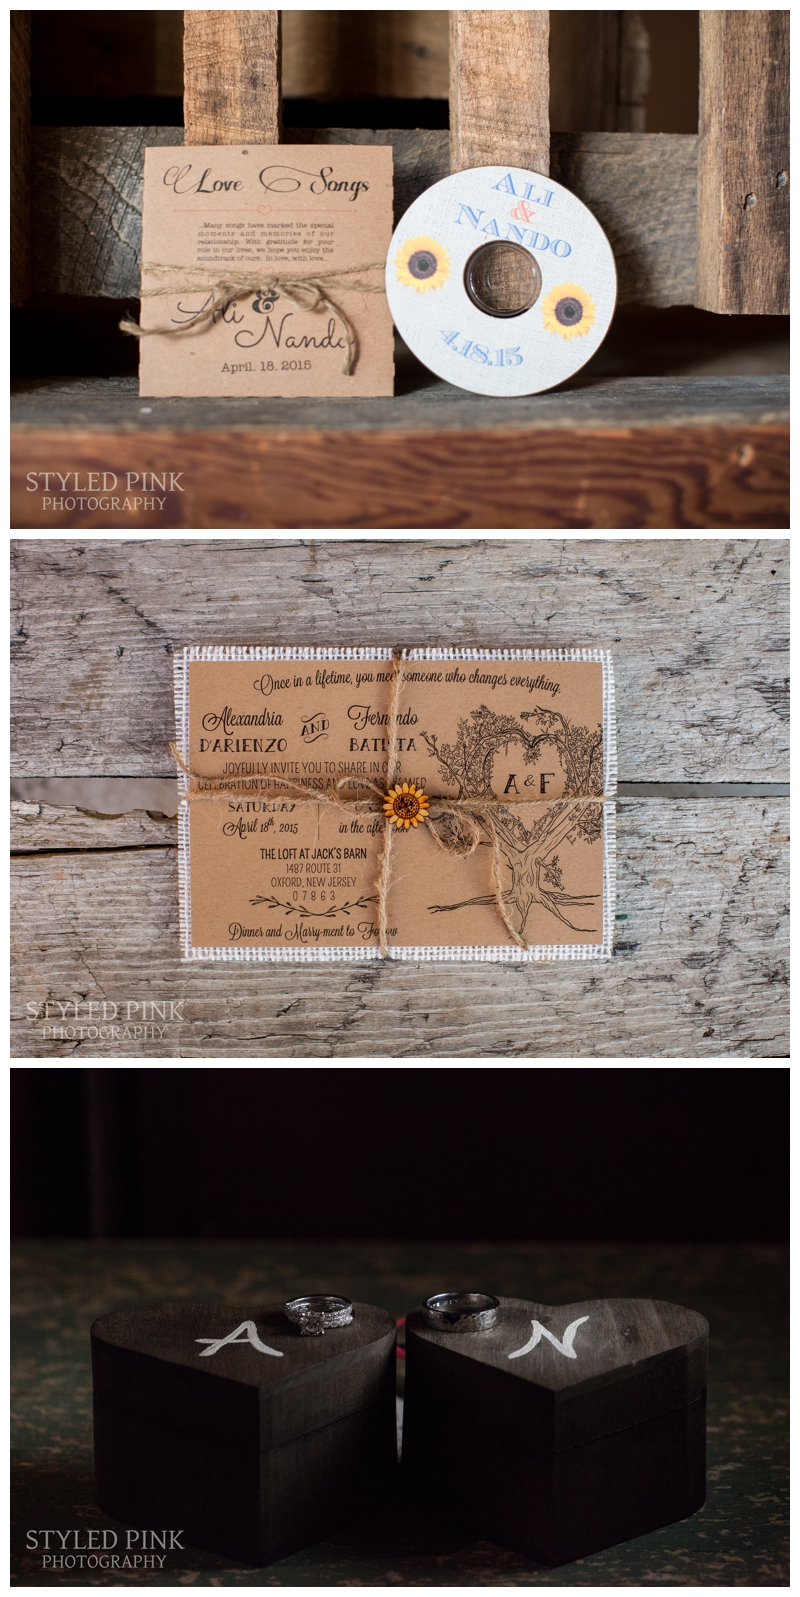 A mixed-tape style CD, a gorgeous wedding ring shot, and one lovely wedding invite- all of the elements that make a perfect wedding. Jack's Barn, NJ